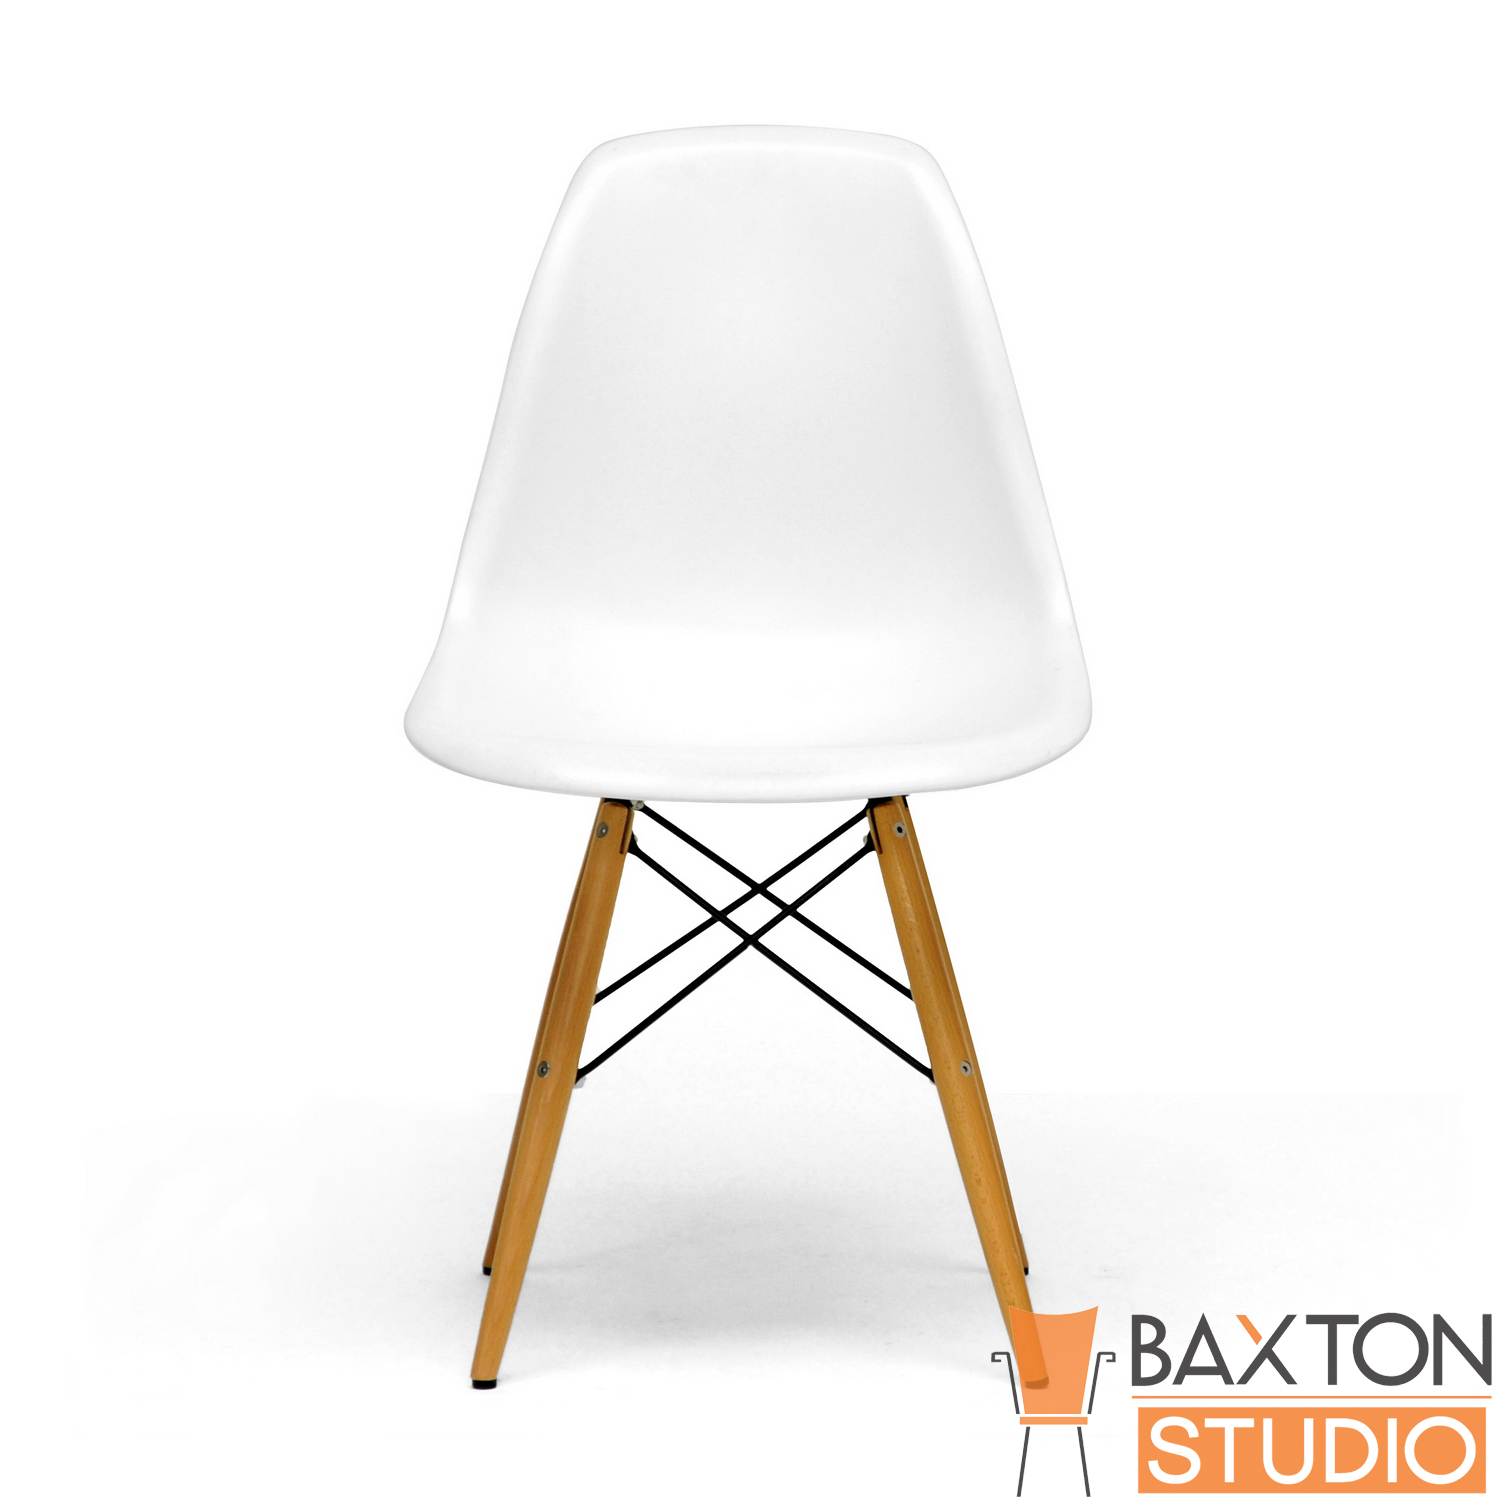 Baxton Studio Lac Set of 2 Modern Plastic Side Chair with Wood Legs - White